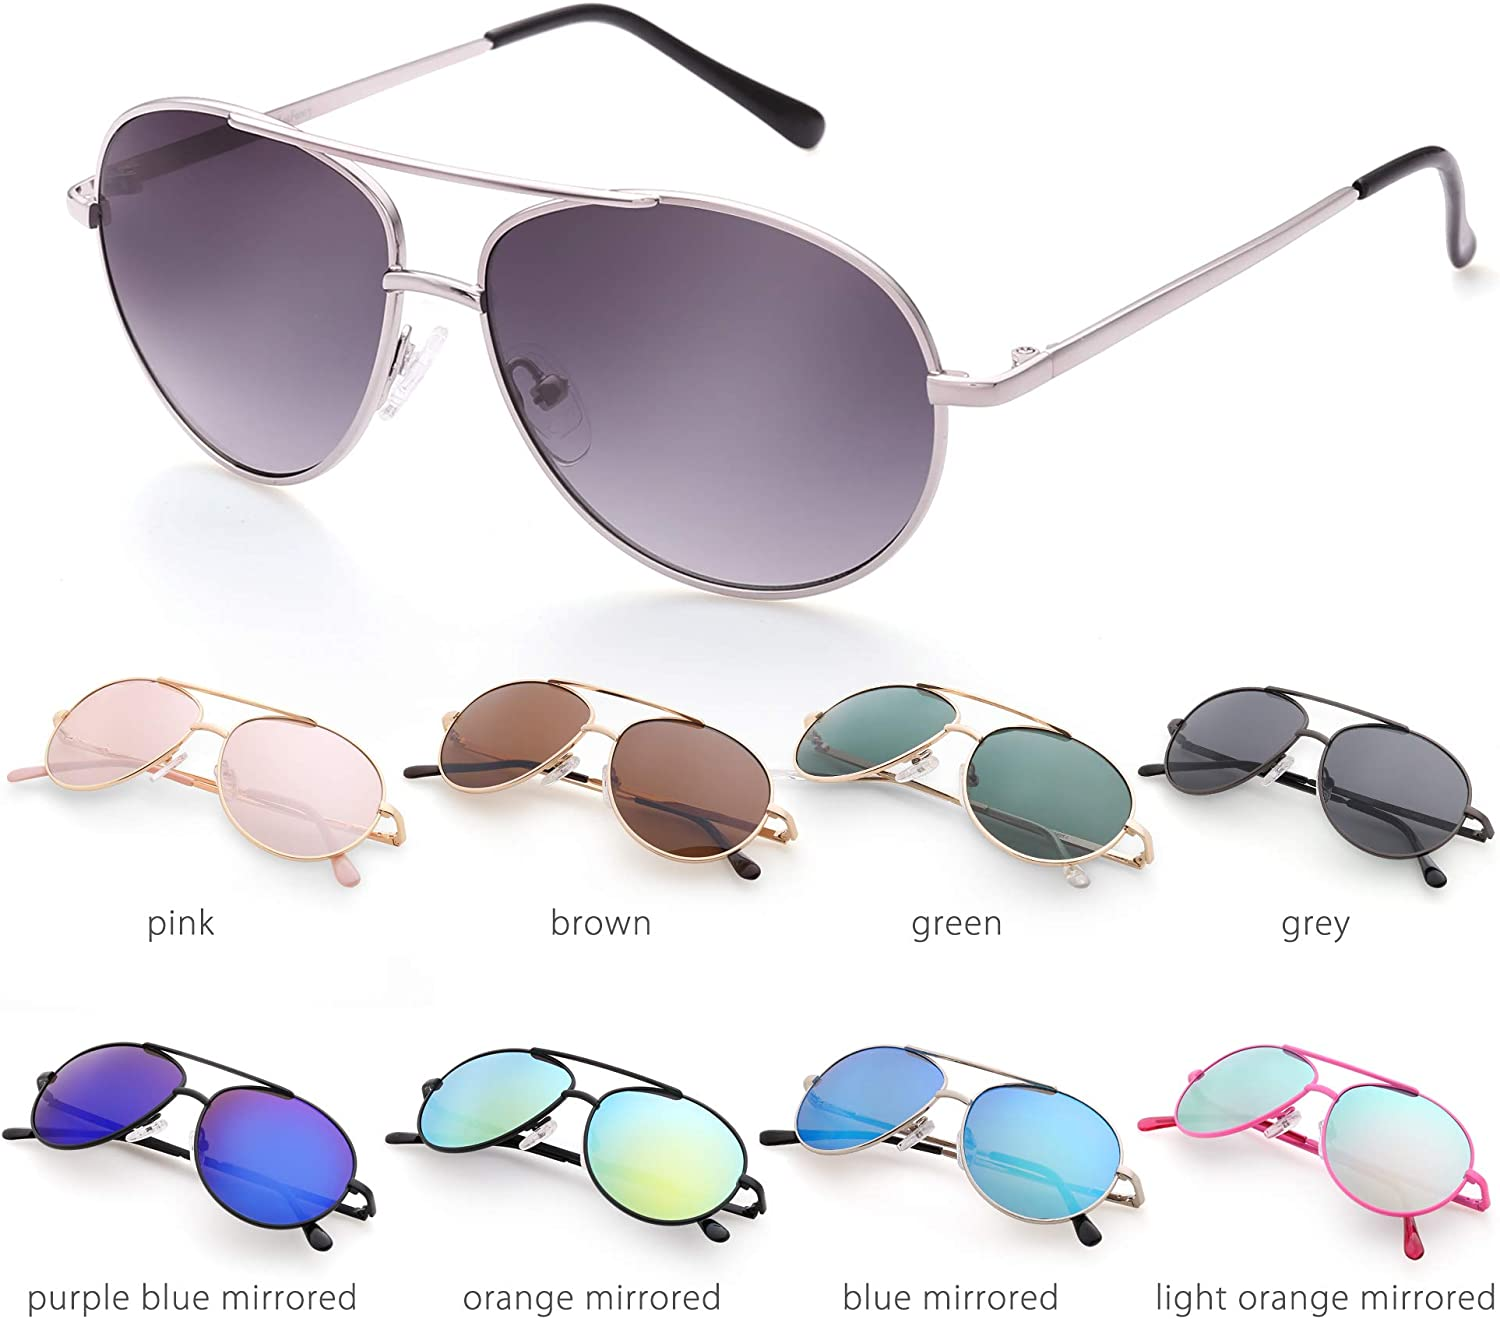 Lightweight Small Face Eyewear for Age 3-12 Aviator Sunglasses for Kids Girls Boys Children with Case UV Protection